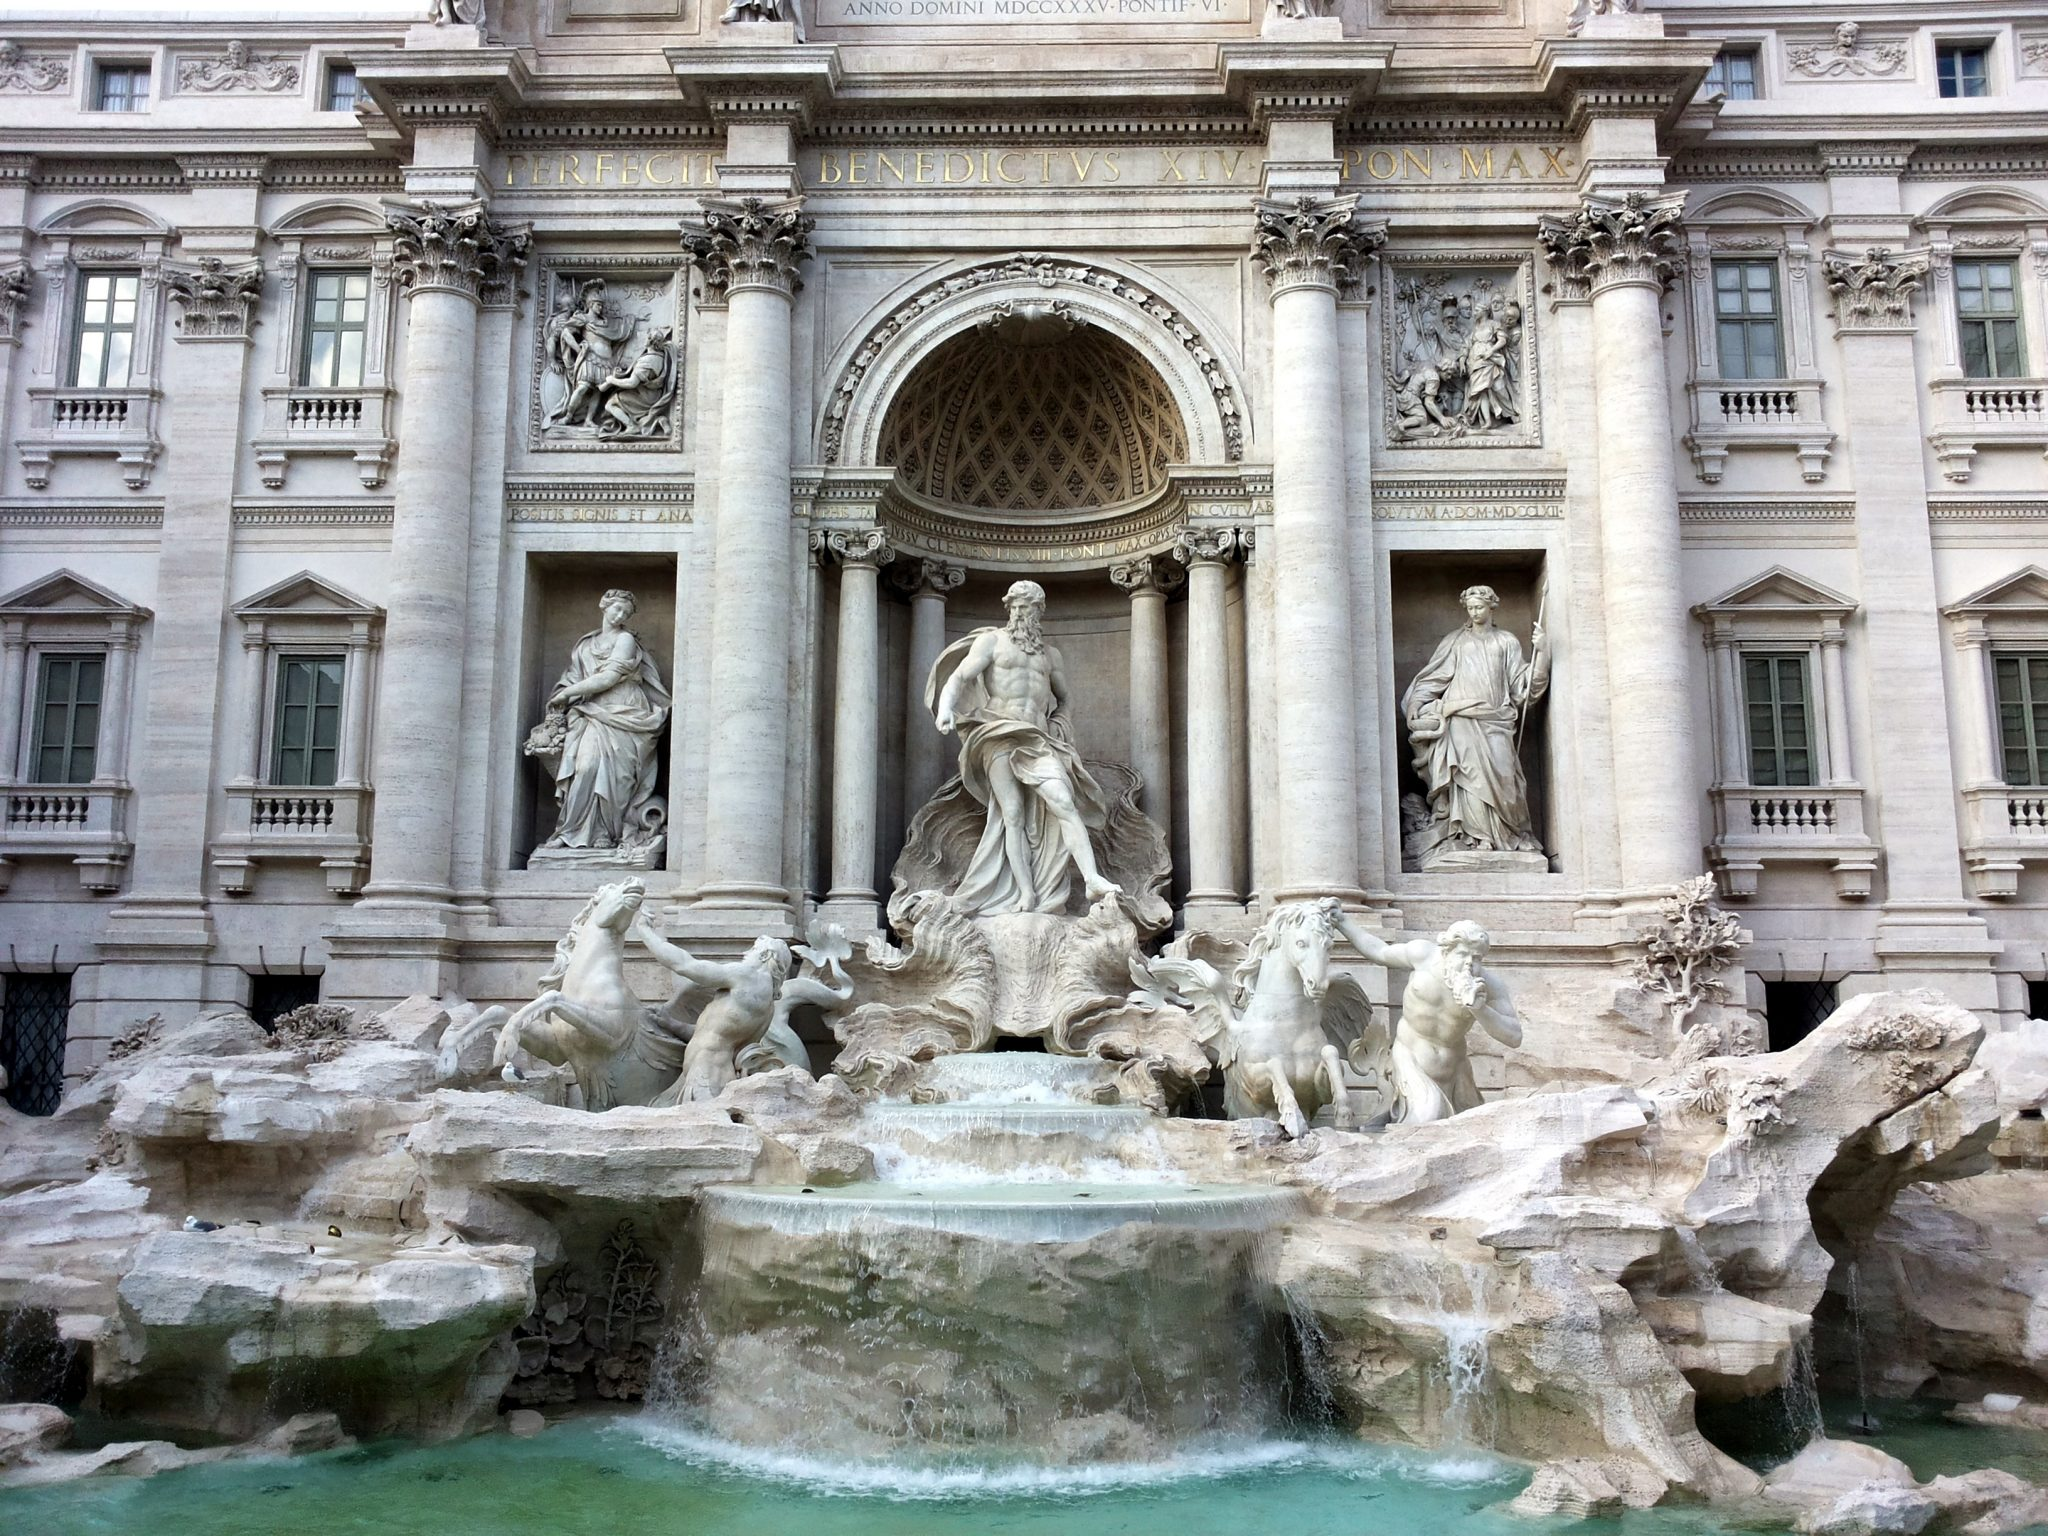 Trevi Fountain, Rome Italy